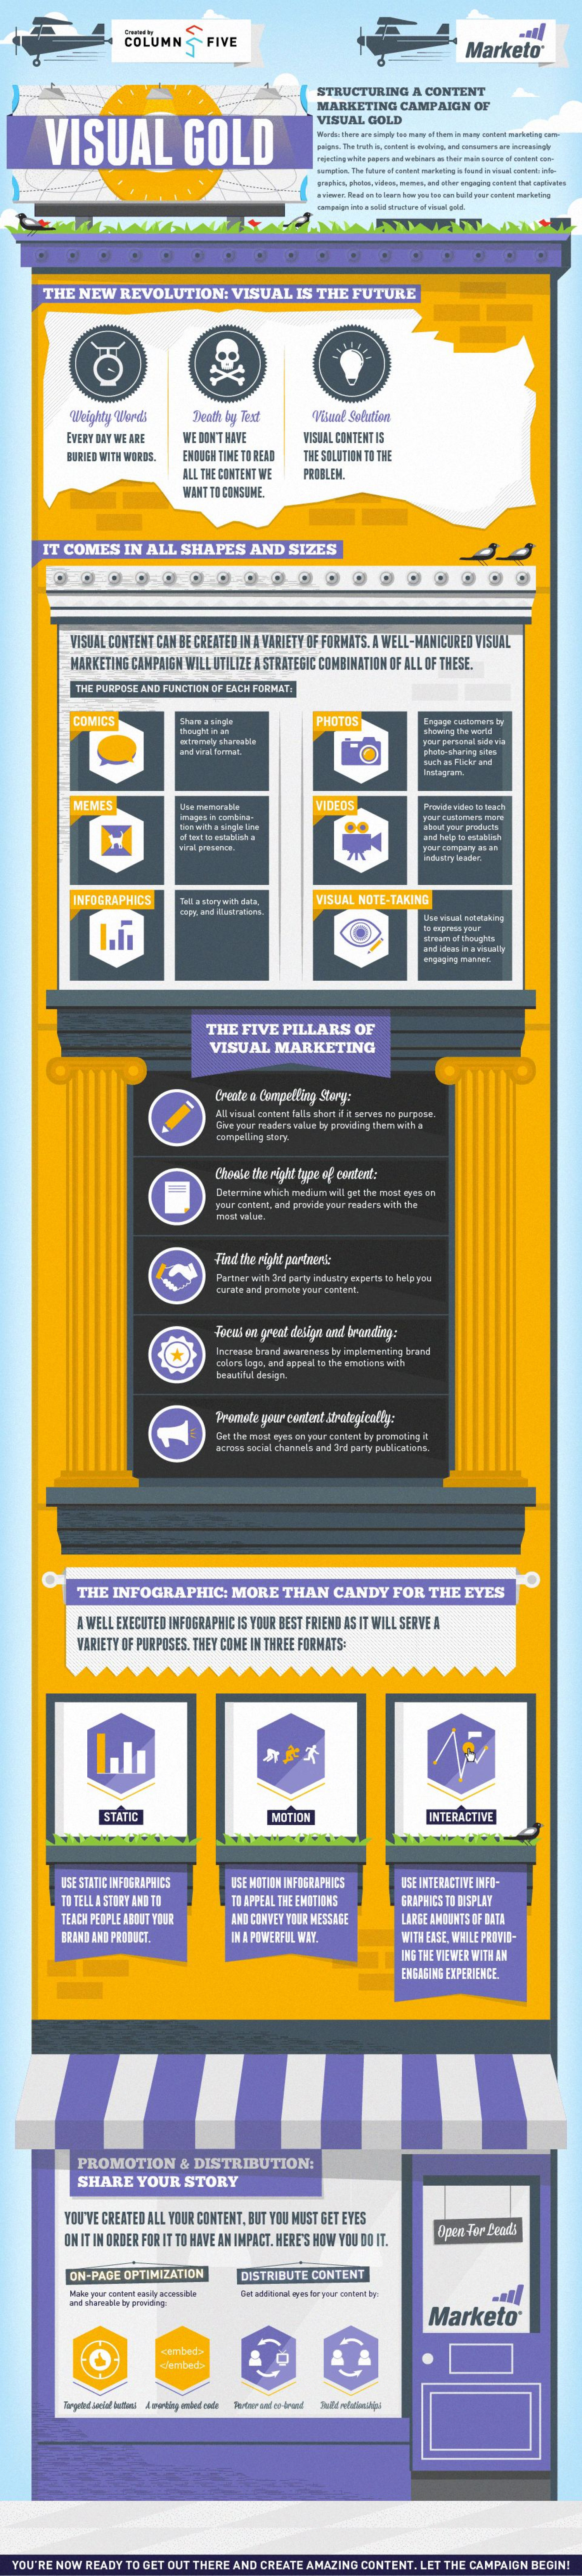 Visual Gold! The New Revolution of Content Marketing  Infographic